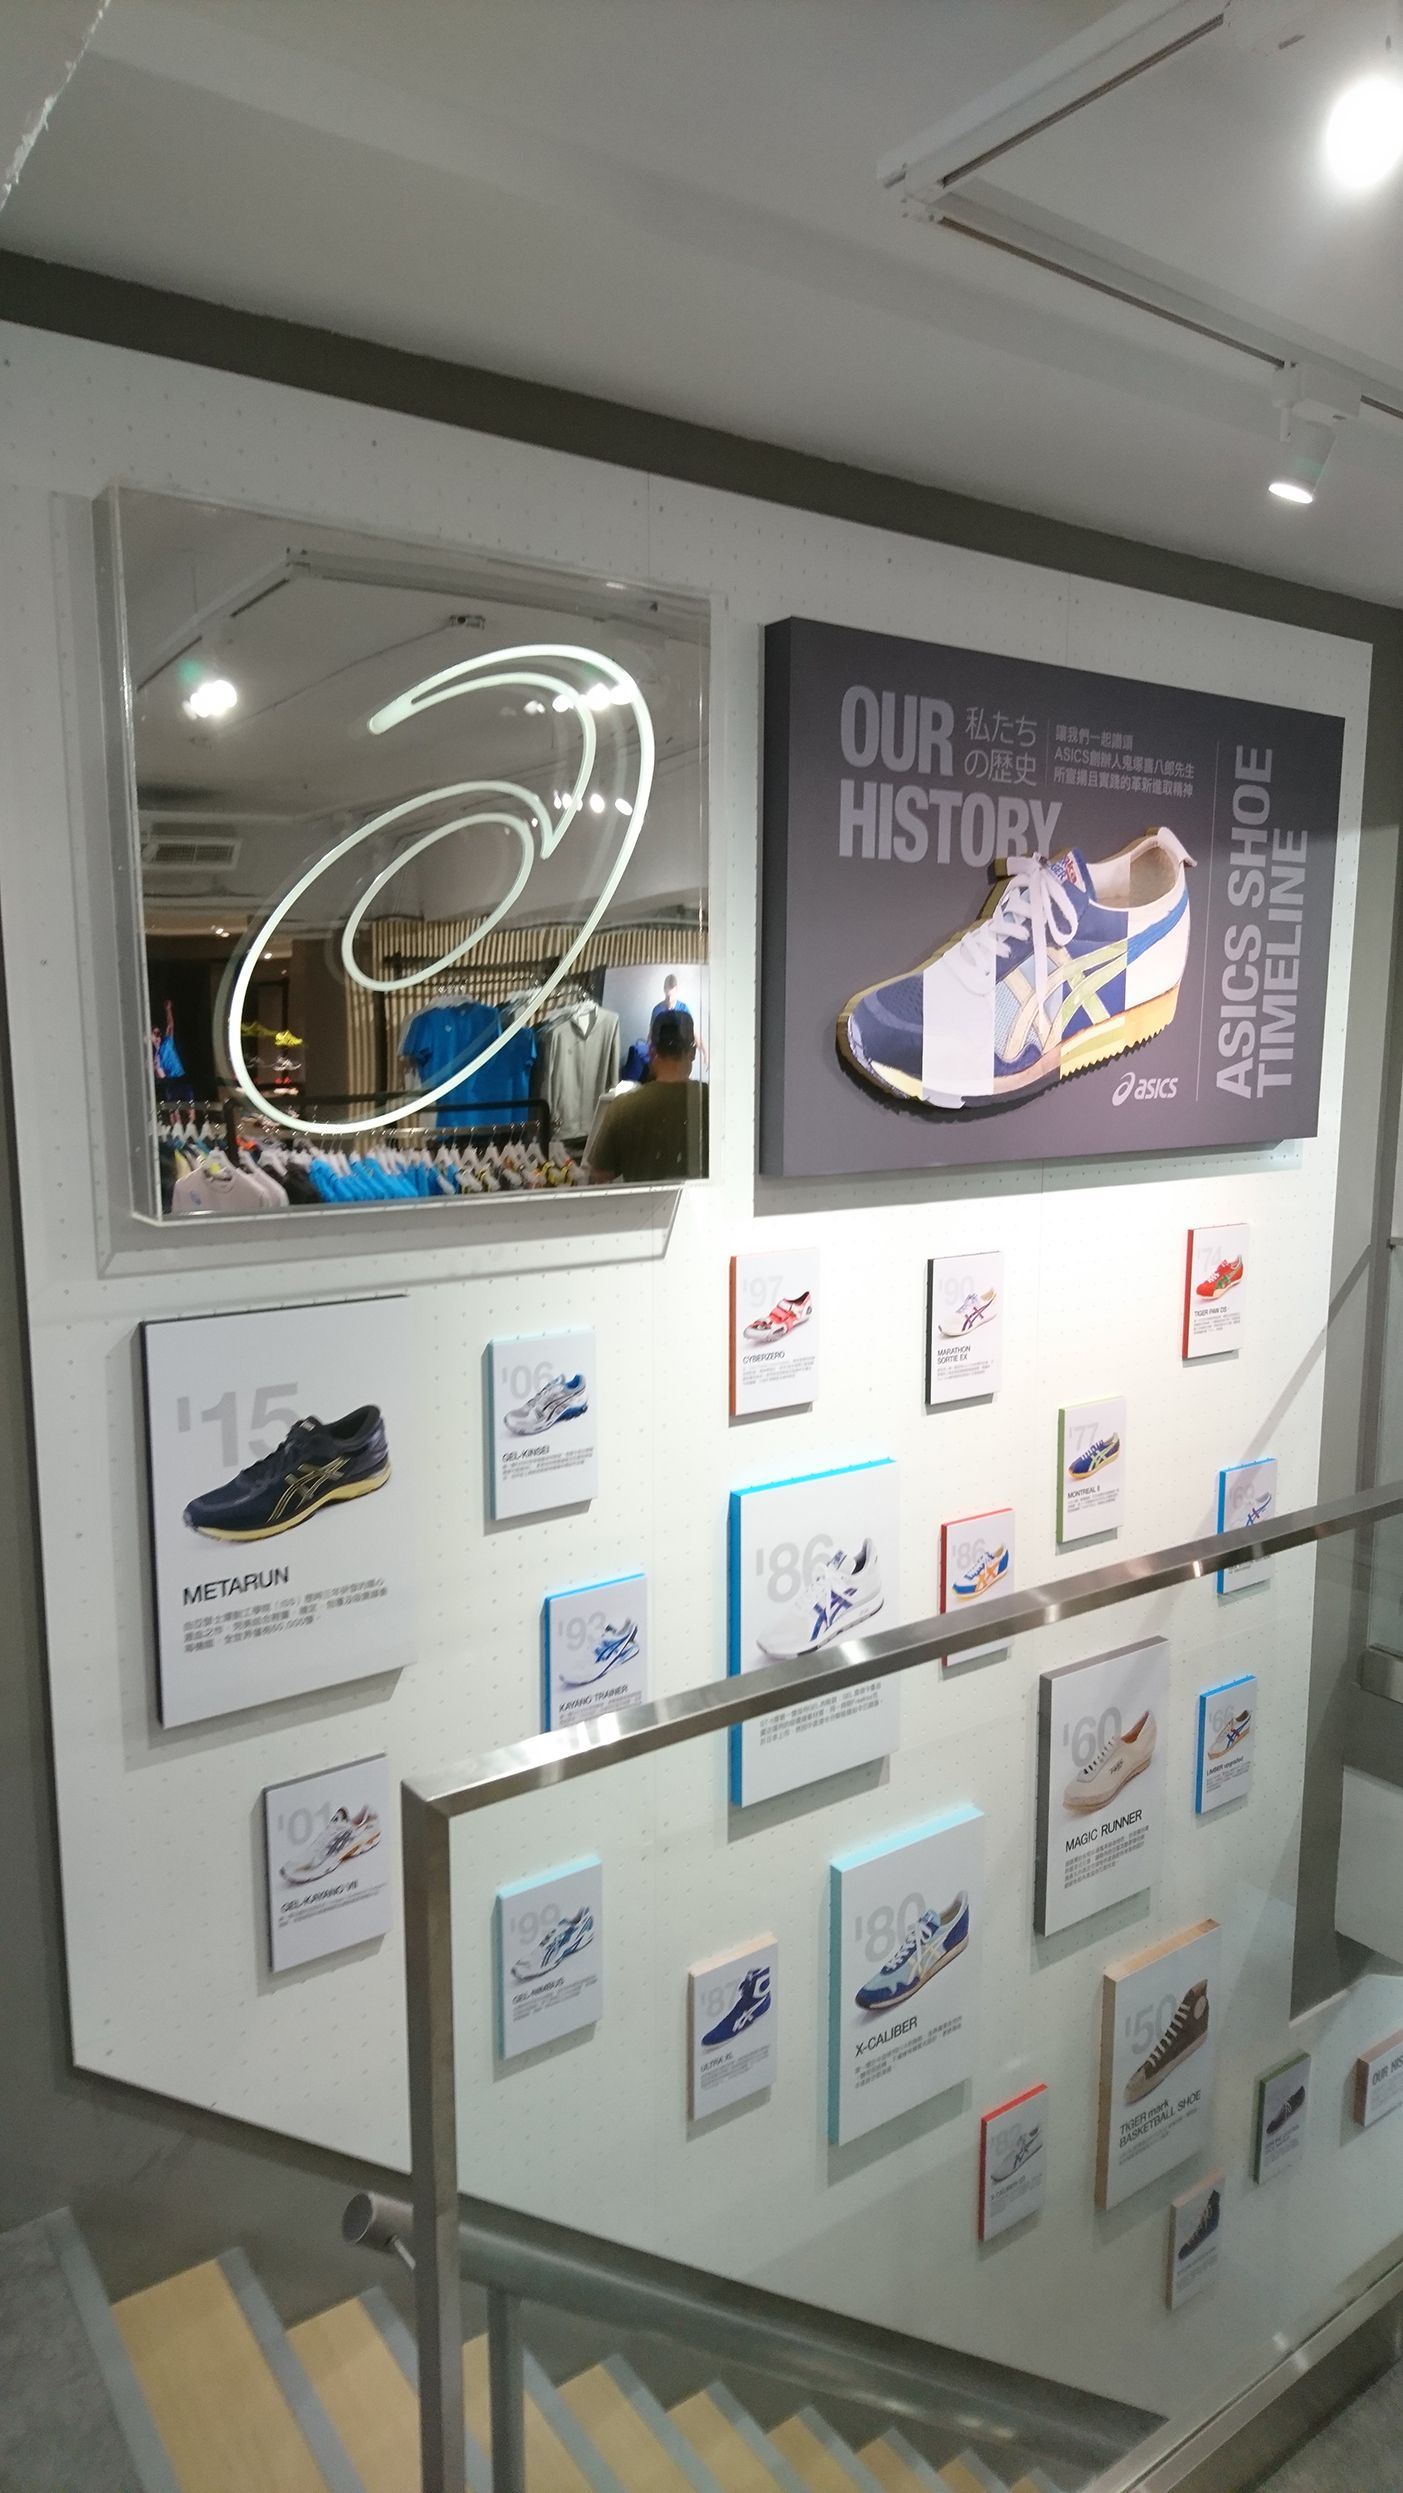 History Asics Wall In Shoe Taipei wP0Onk